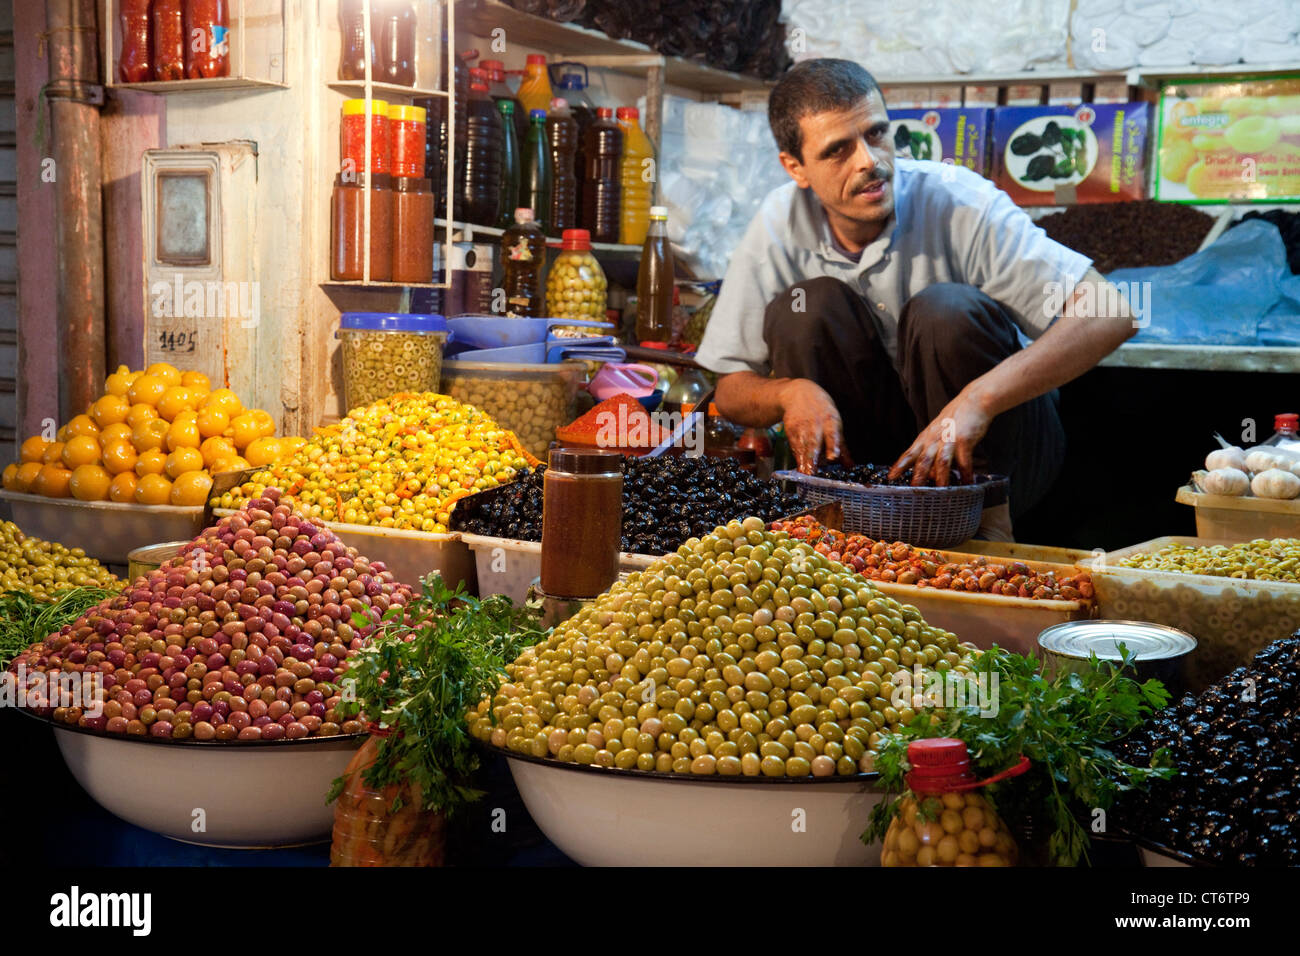 A an selling olives in the market souk, the Medina, Taroudant, morocco Africa Stock Photo